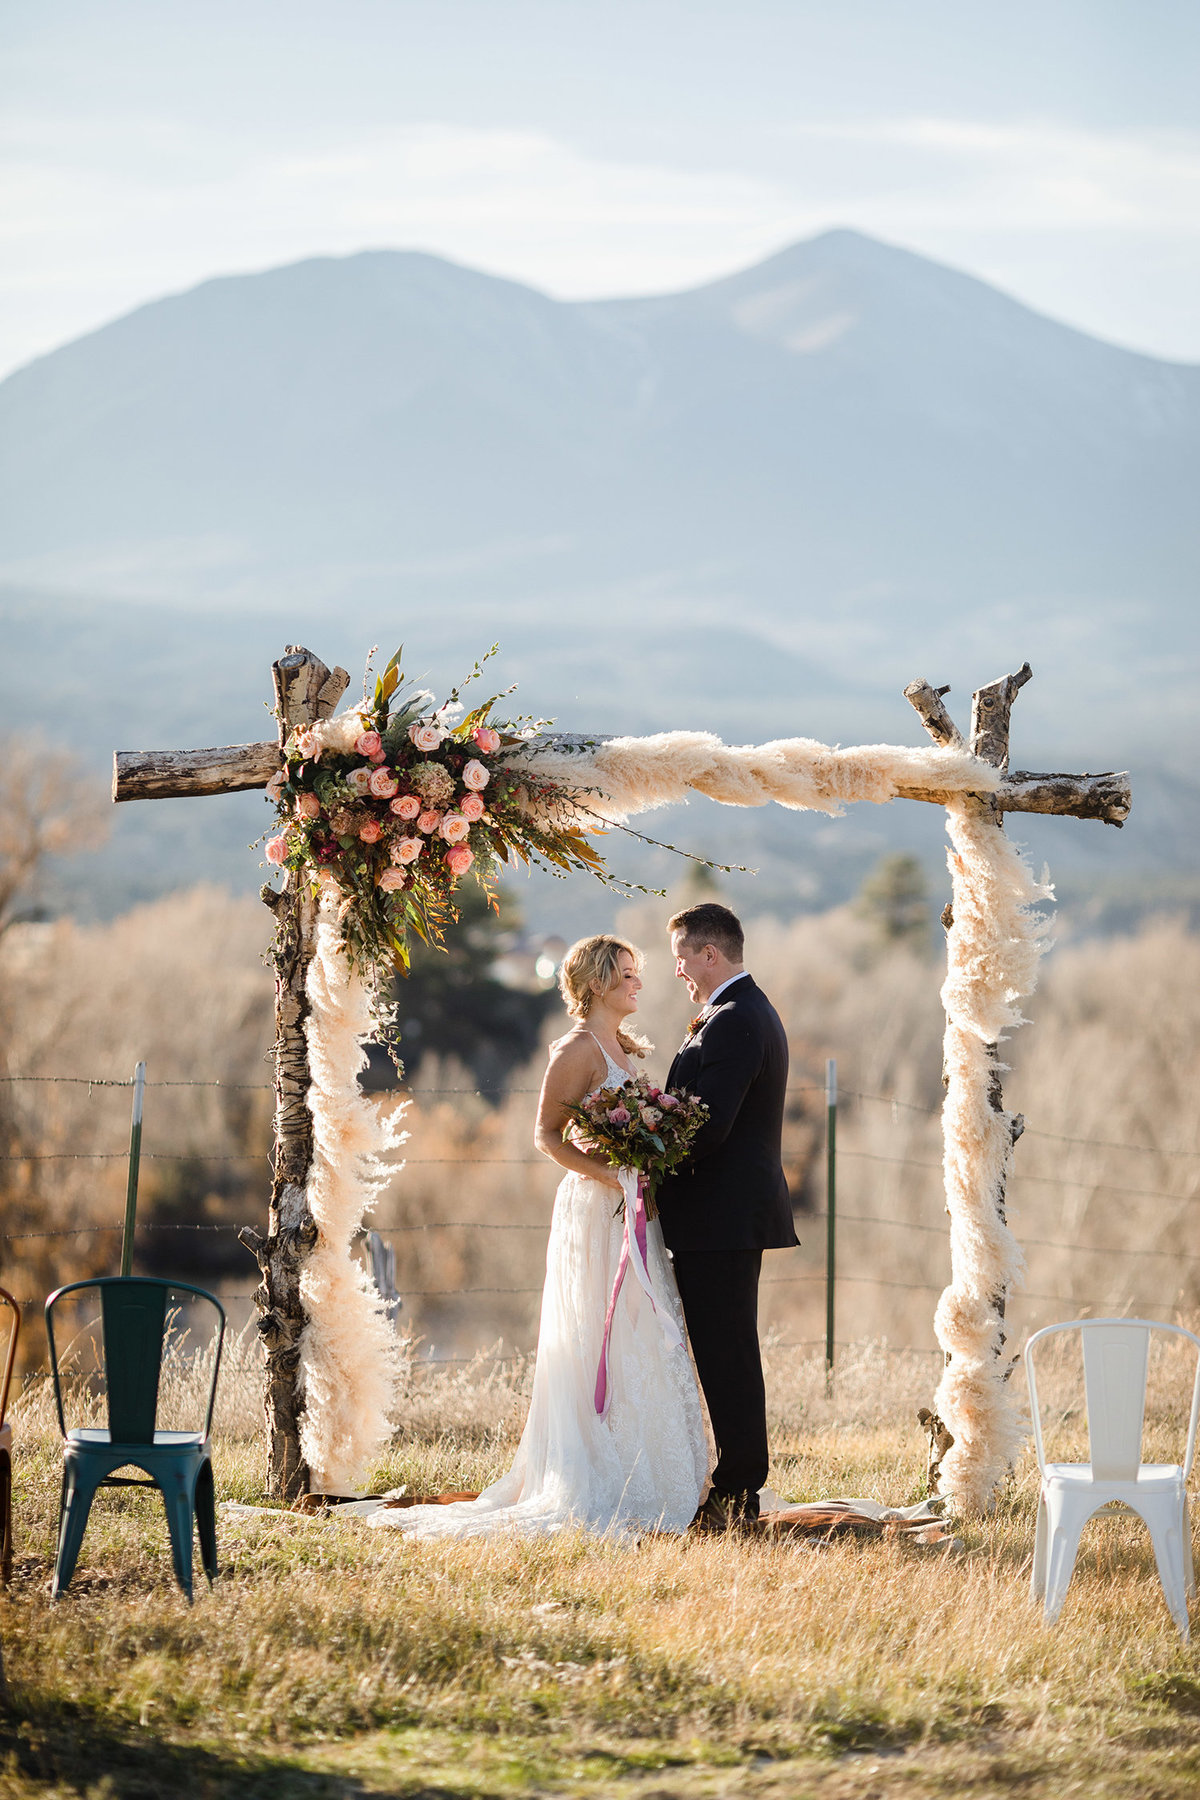 Everett Ranch Rocky Mountain Wedding Outdoor Barn Rustic Salida Colorado Alpaca Collegiate Peaks Vintage Ranch Fish Floral Arbor 011